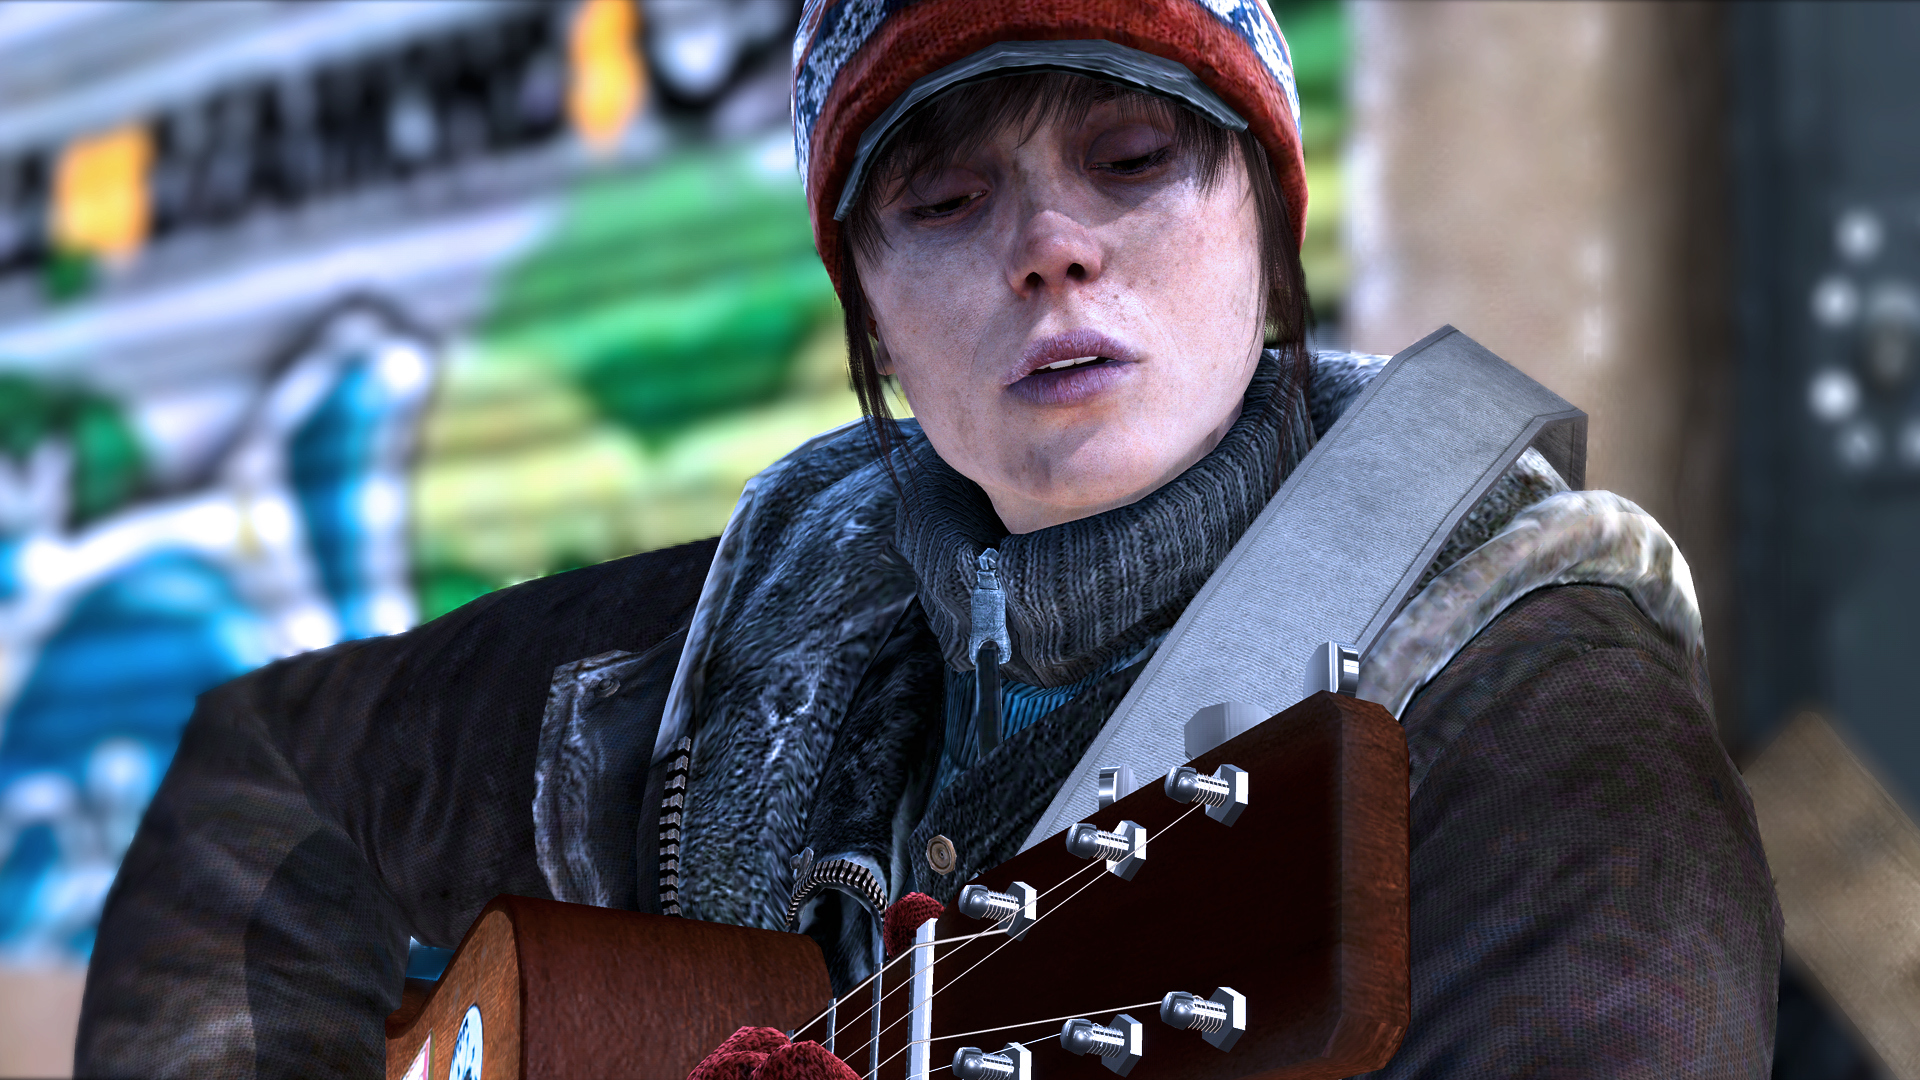 Over 8 minutes of 'Beyond: Two Souls' gameplay footage released